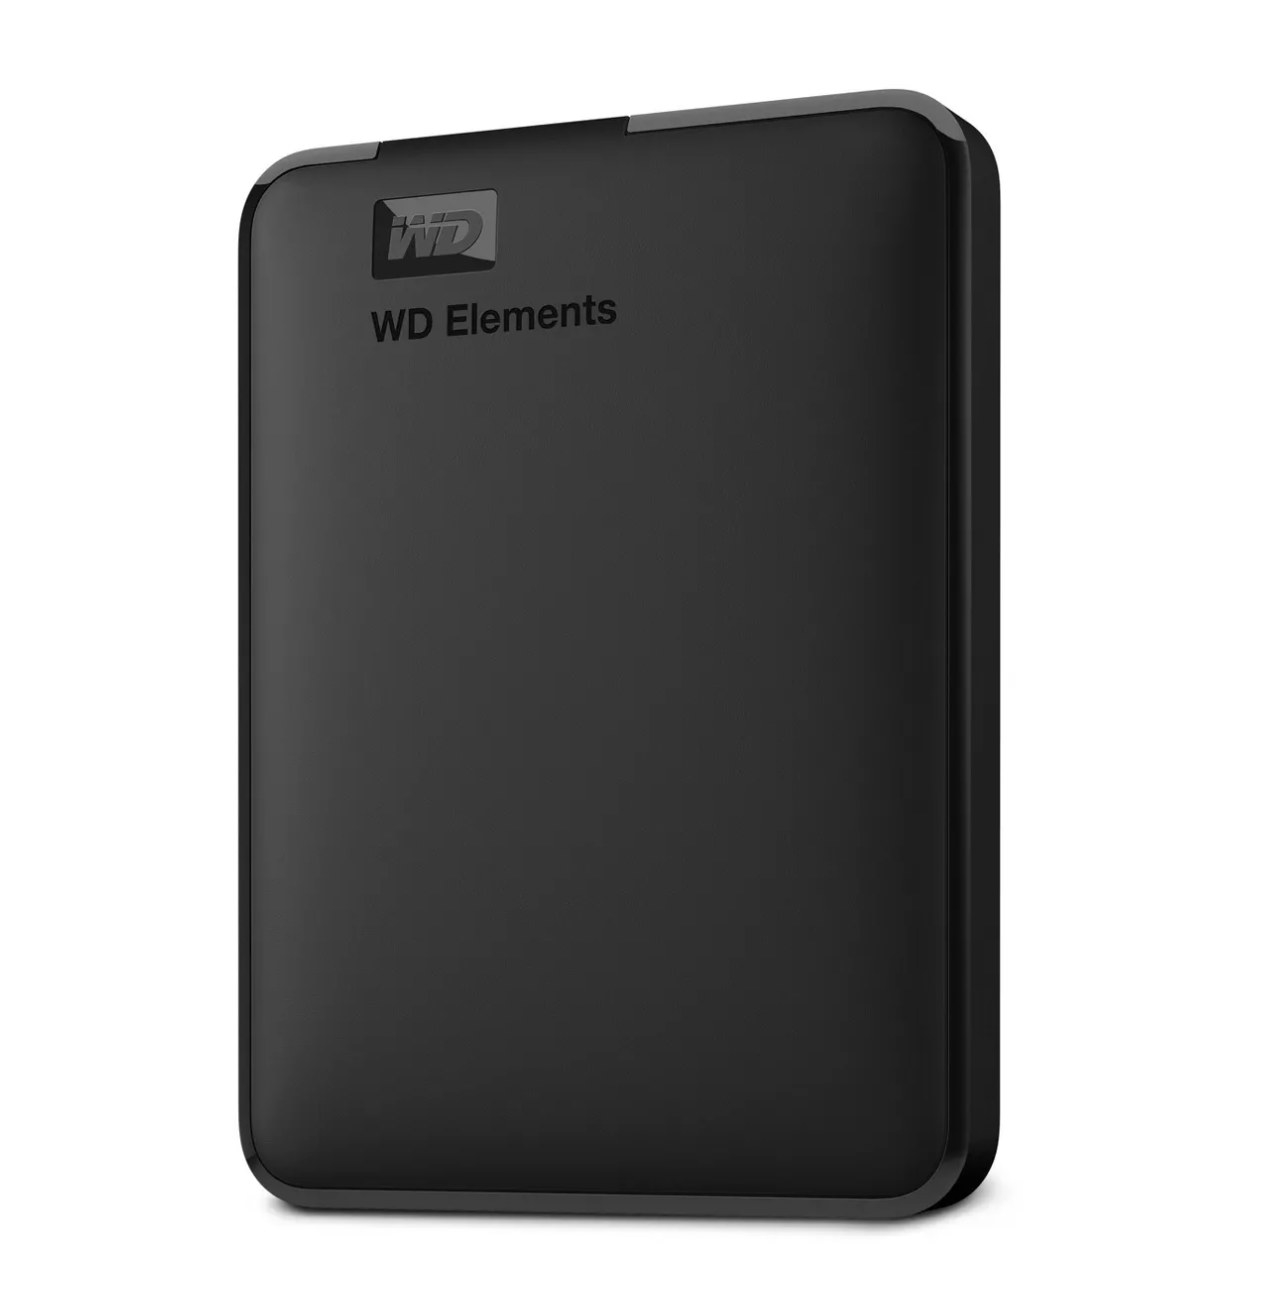 A black portable hard drive